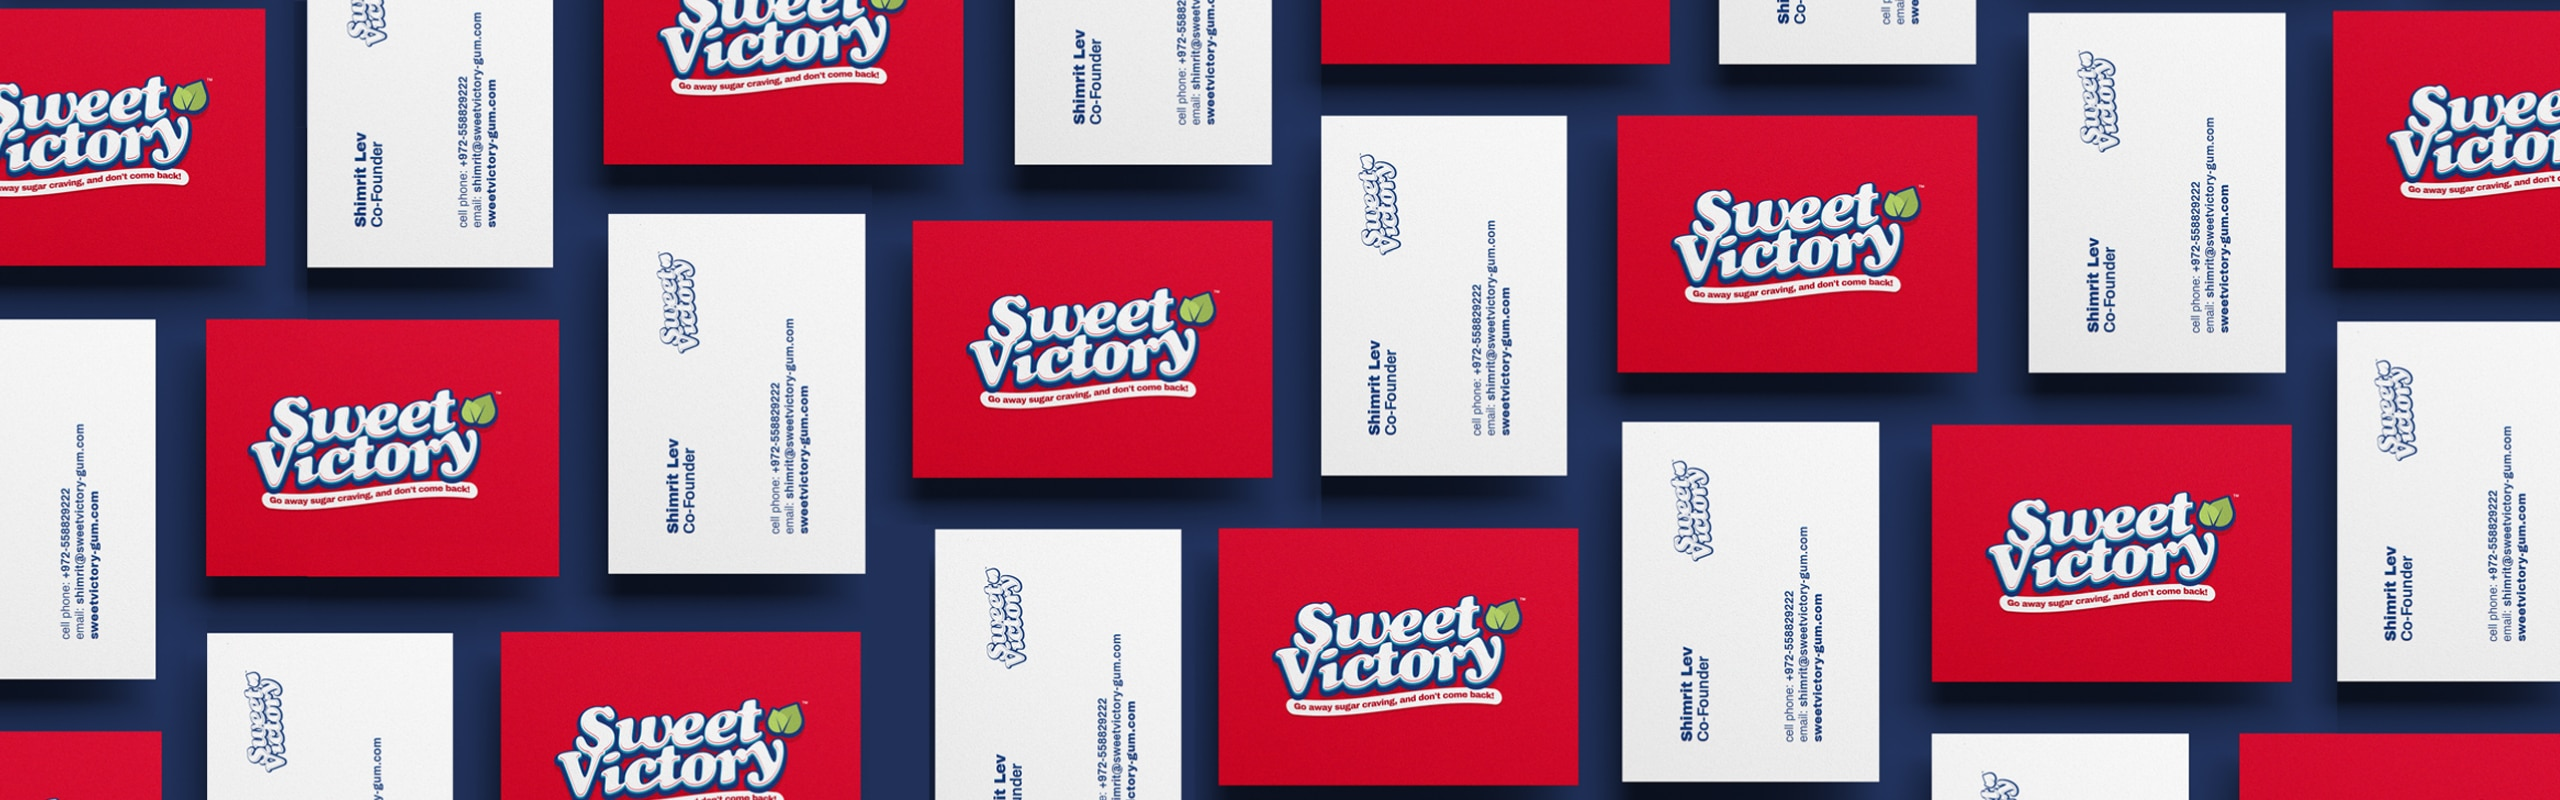 Sweet Victory - 21 - Natie Branding Agency